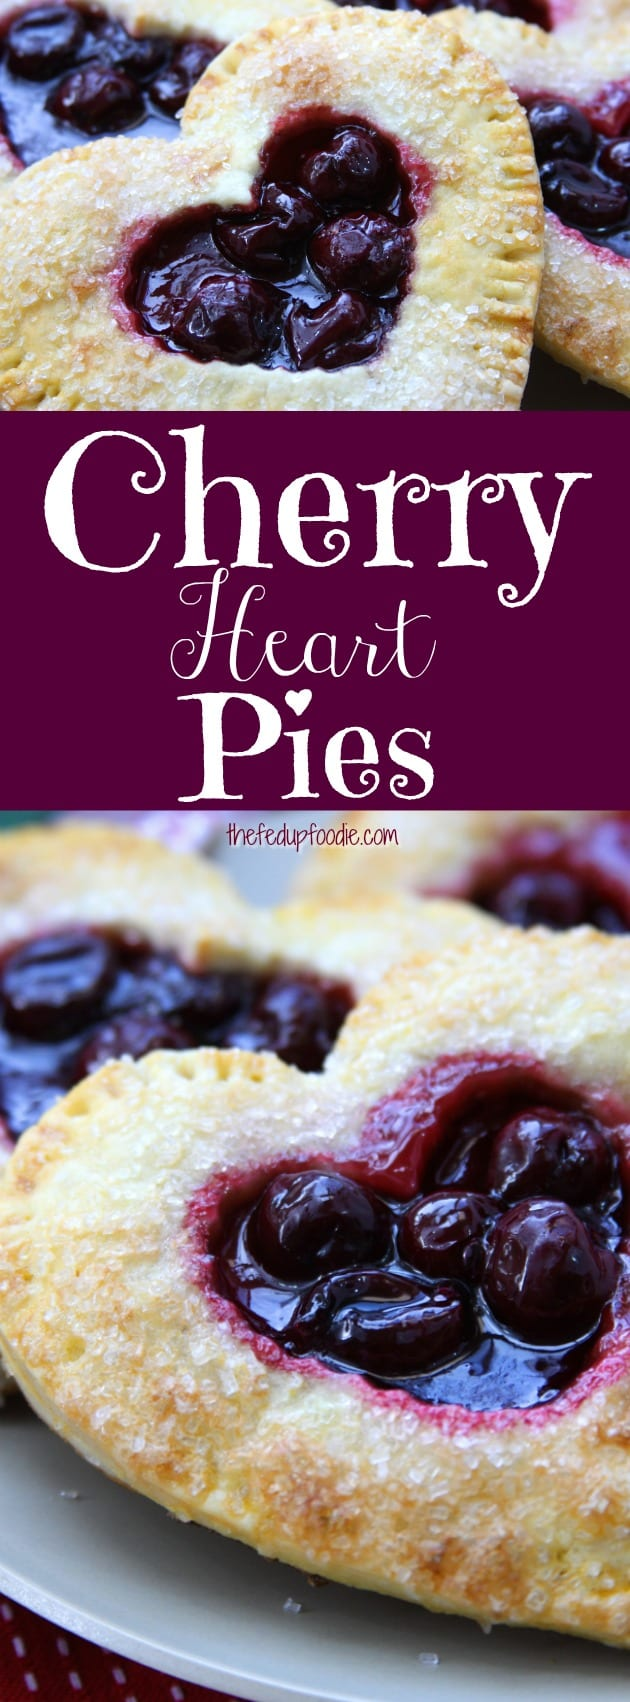 Homemade individual Cherry Heart Pies, with flakey buttery crust and sweet bold cherries make the perfect treat for Valentines Day. The best part is no artificial ingredients so you know your sweetheart's treat is only the best. #thefedupfoodie #cherrypie #cherrypiefillingrecipe #healthycherrypie #handpies #homemadecherrypie https://www.thefedupfoodie.com